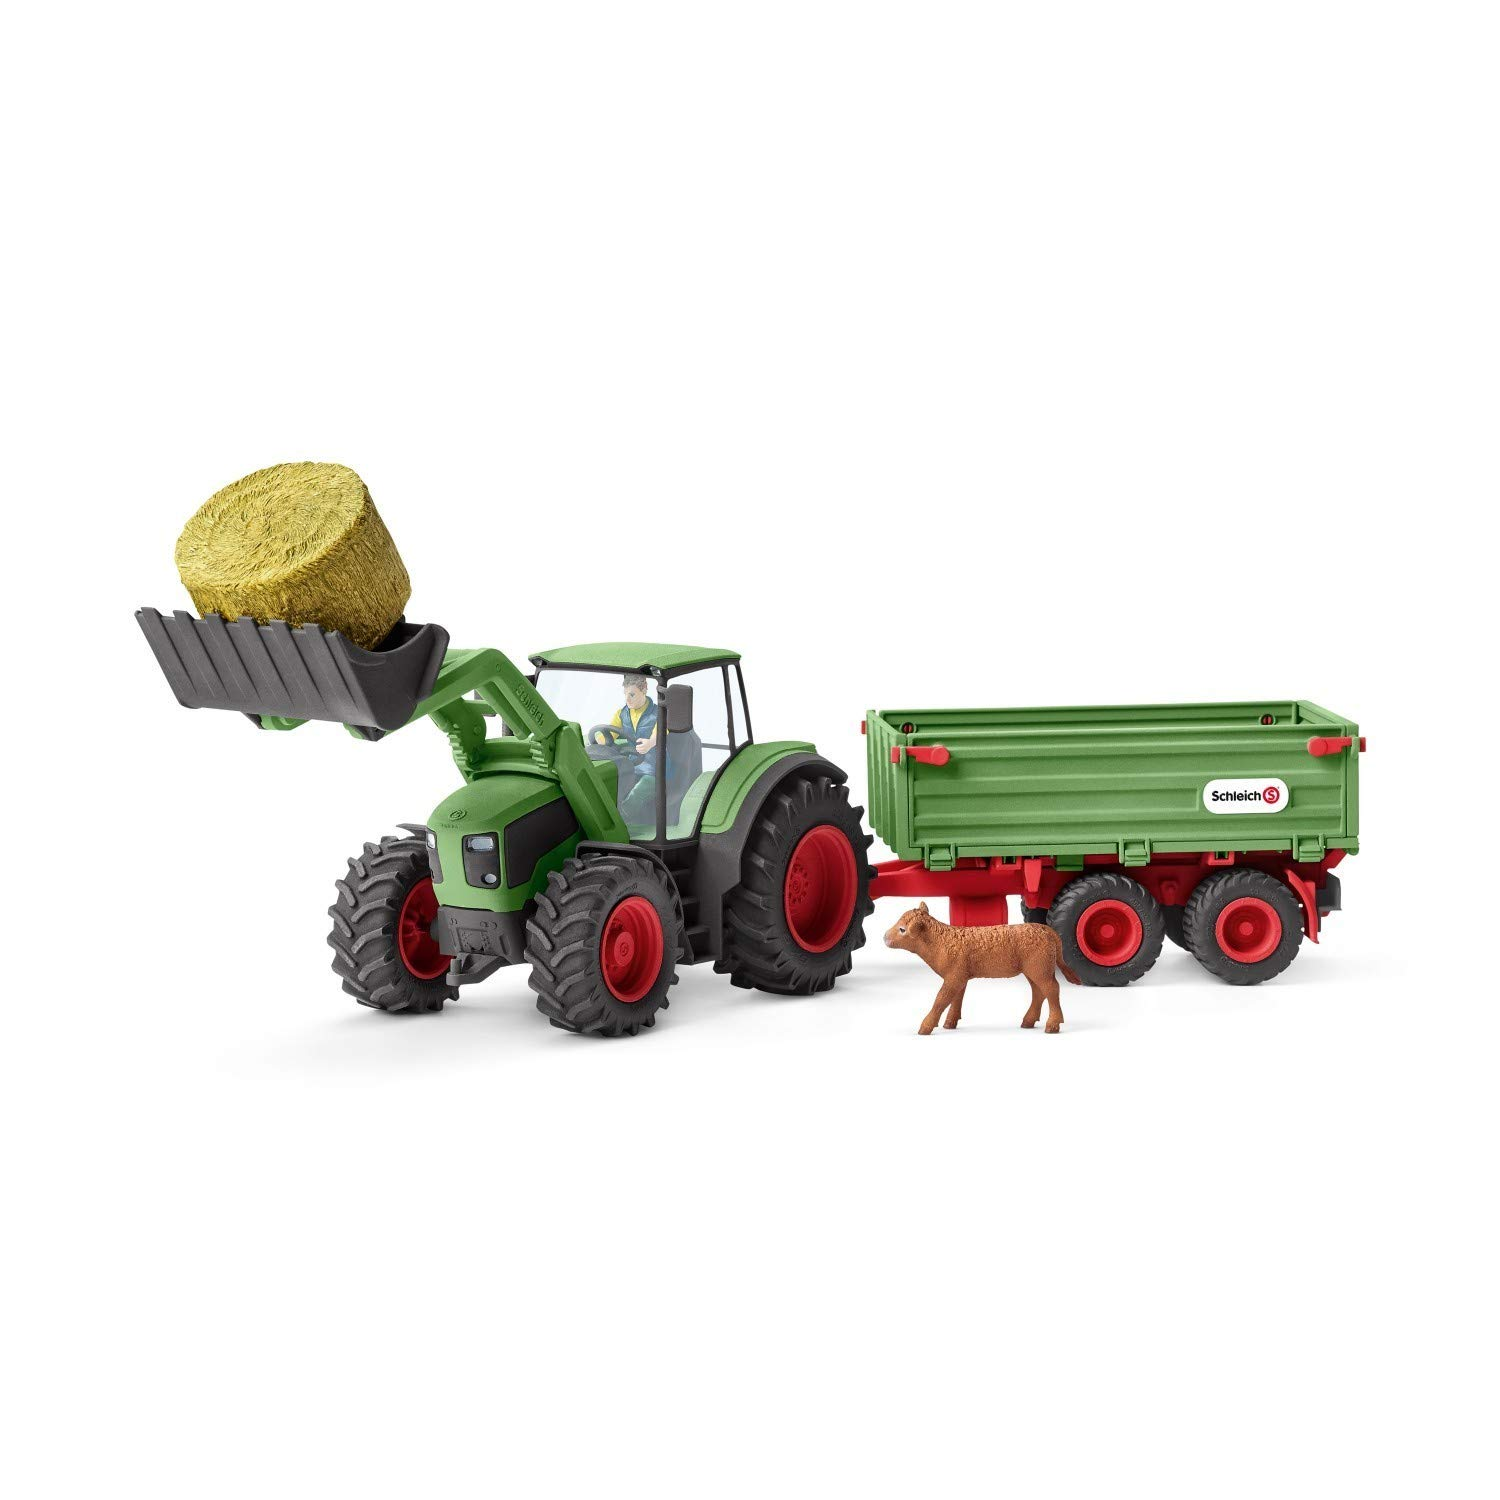 Schleich Farm World Tractor Trailer